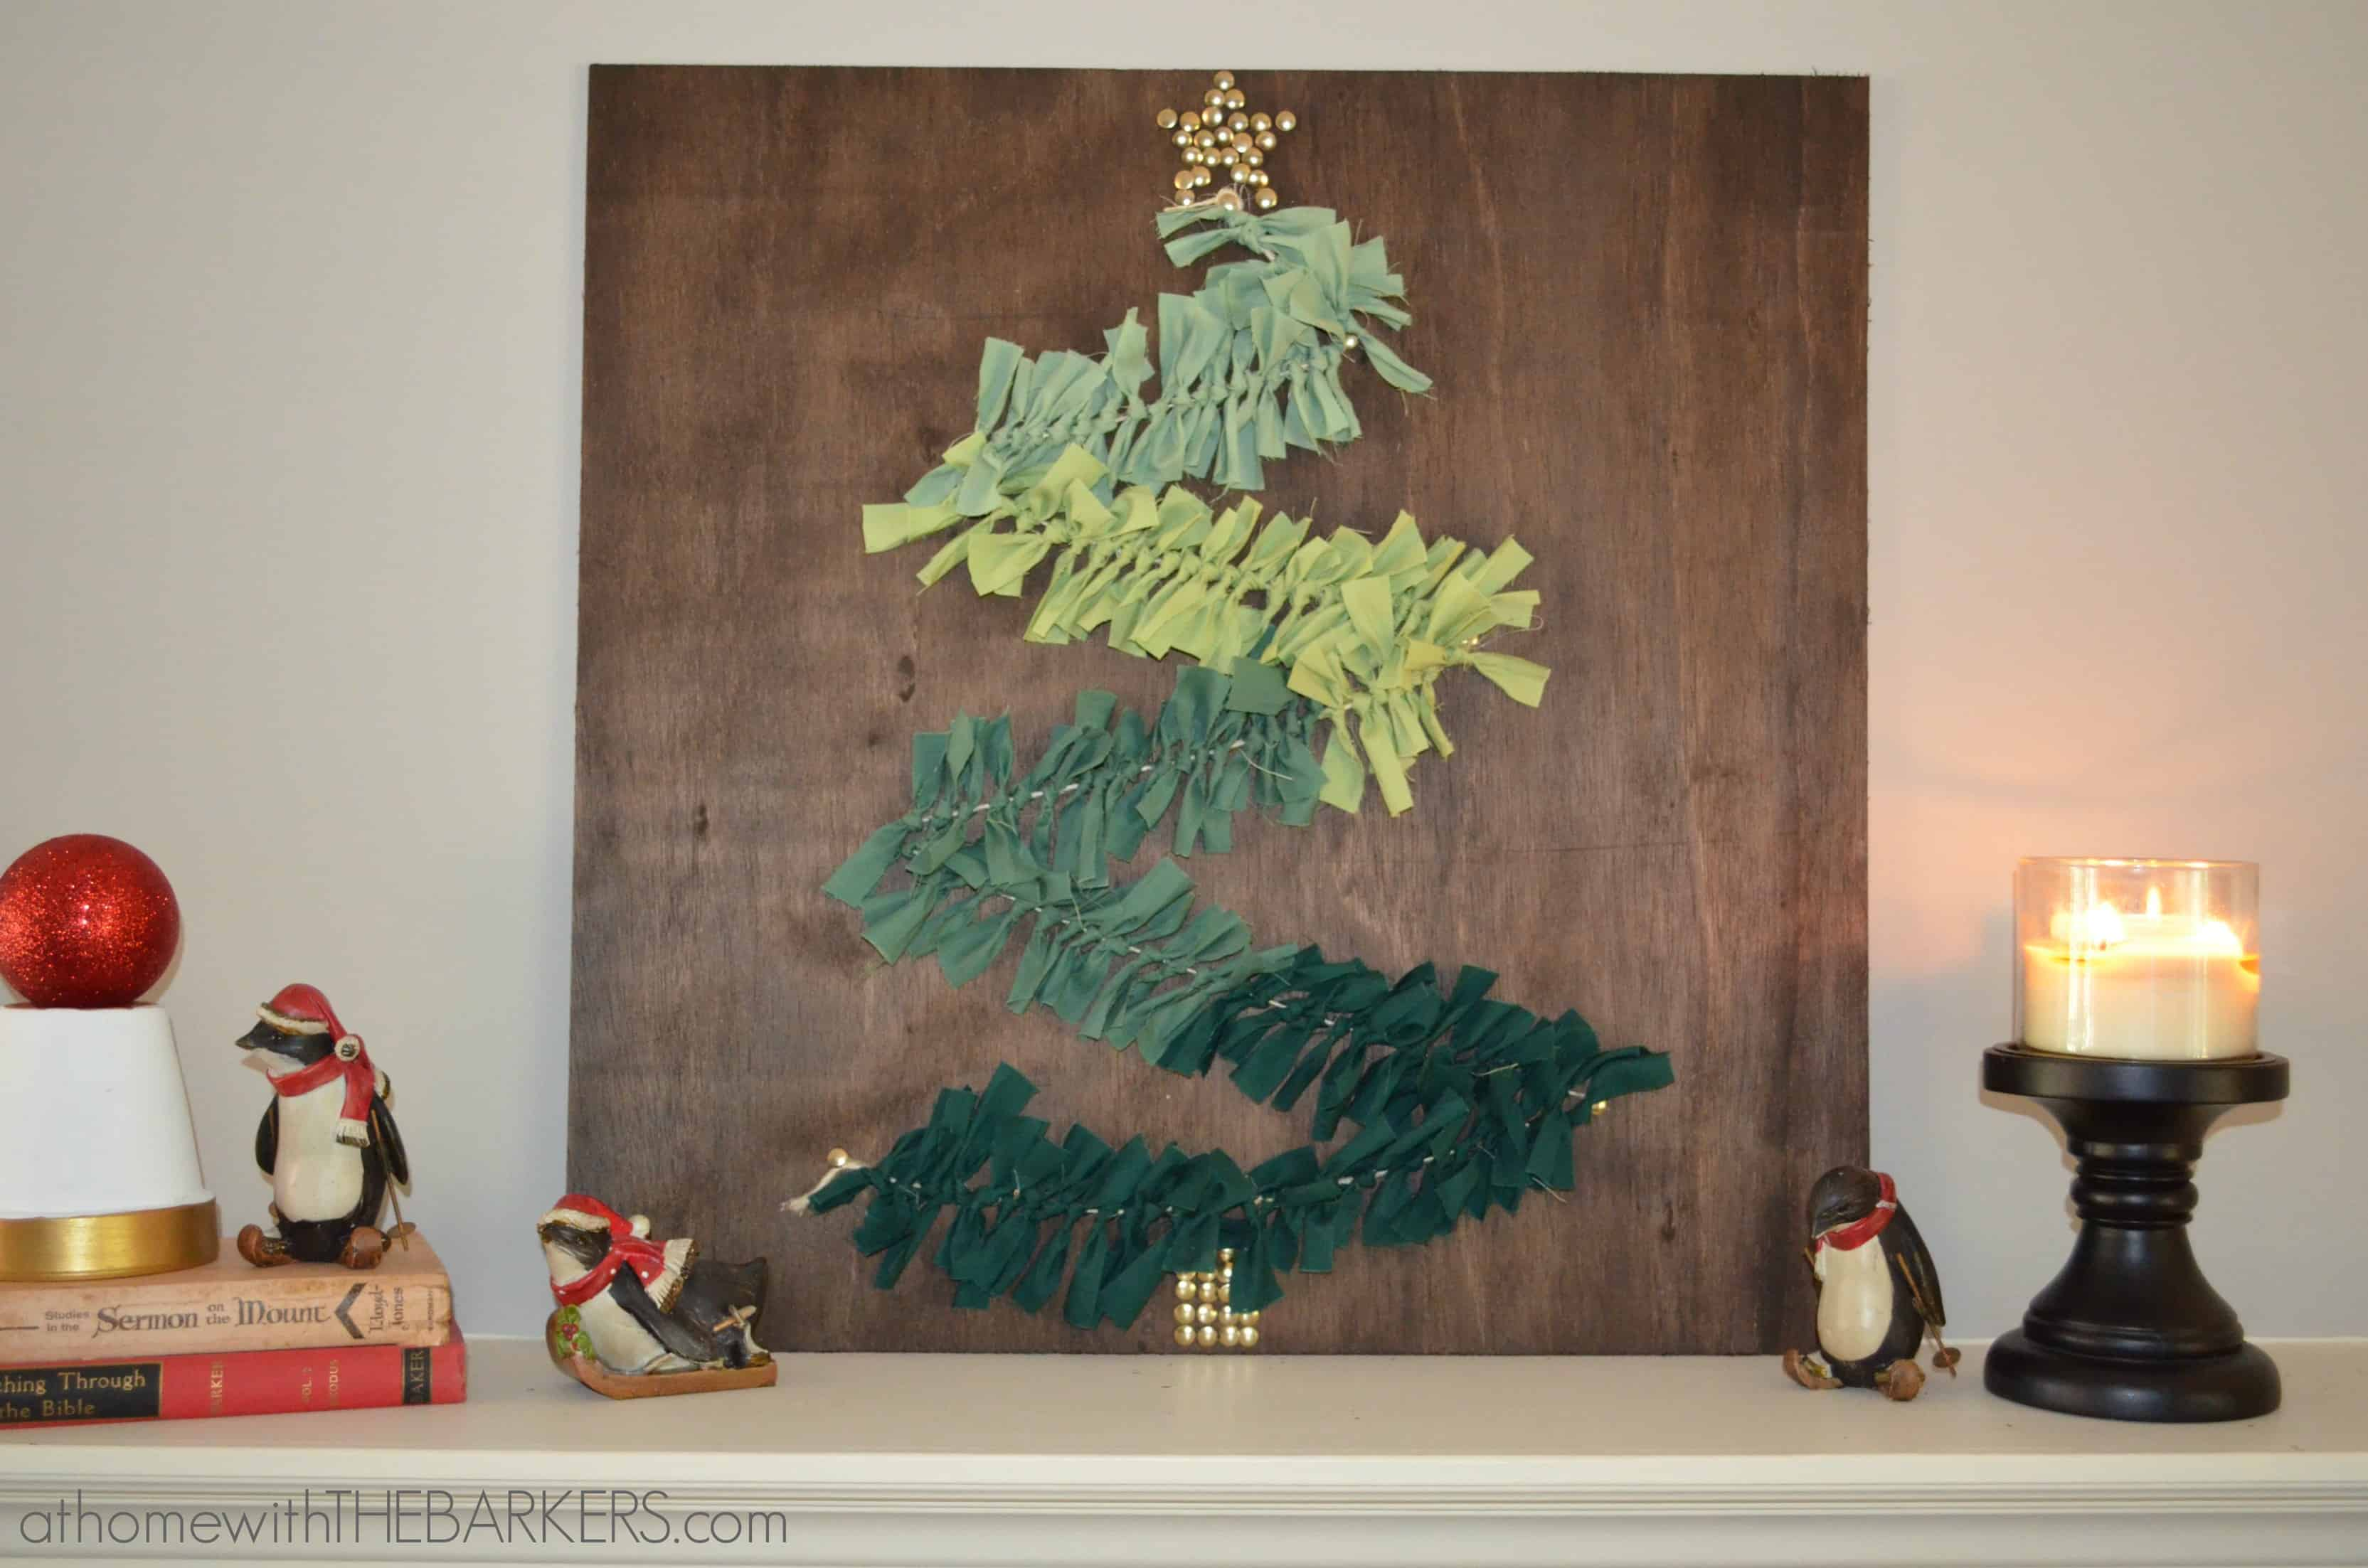 DIY Christmas Tree Wall Art on Mantel - At Home with The Barkers